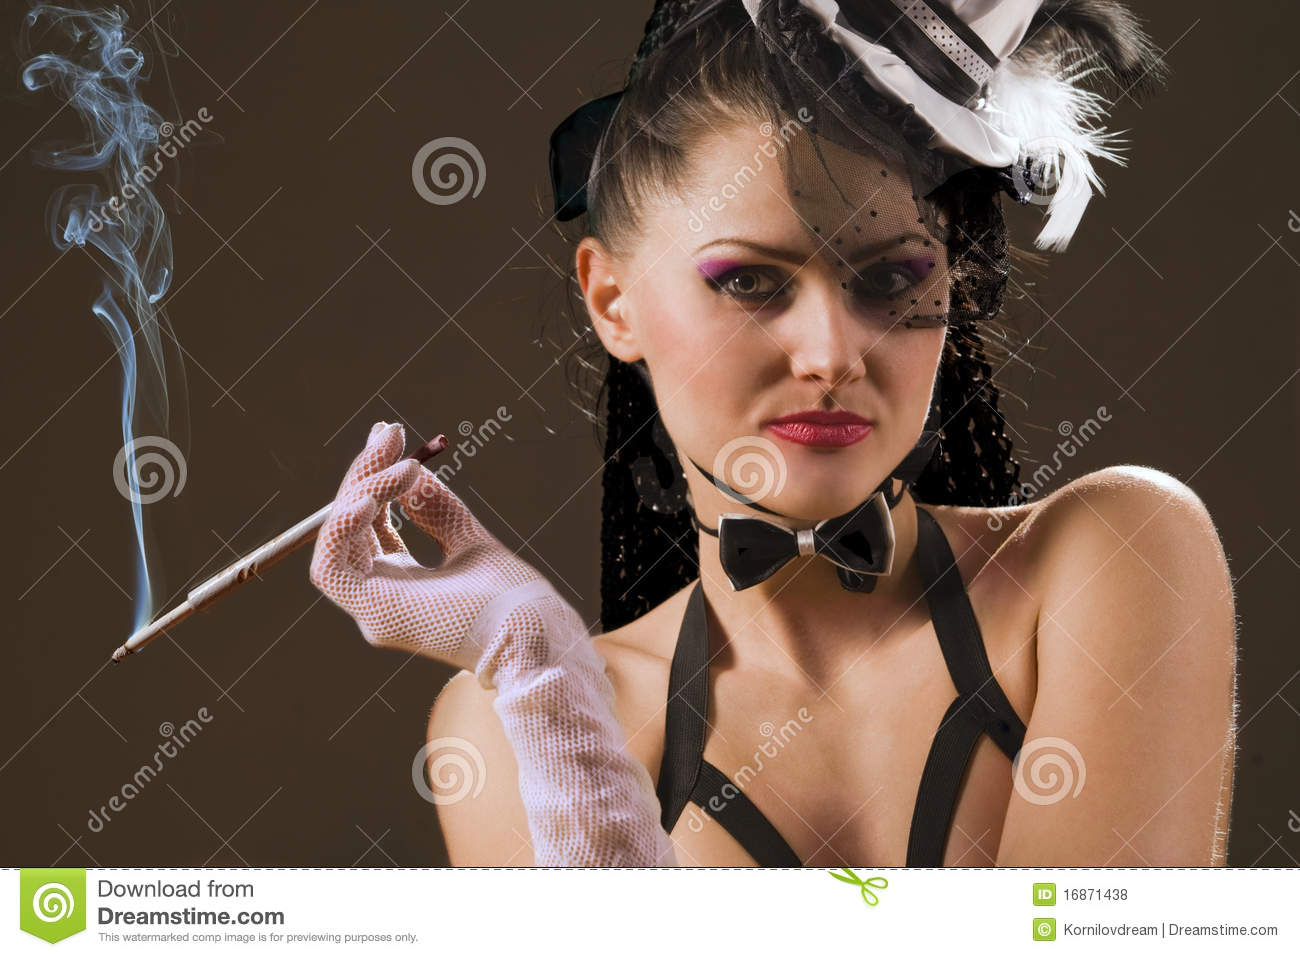 Woman with a cigarette holder